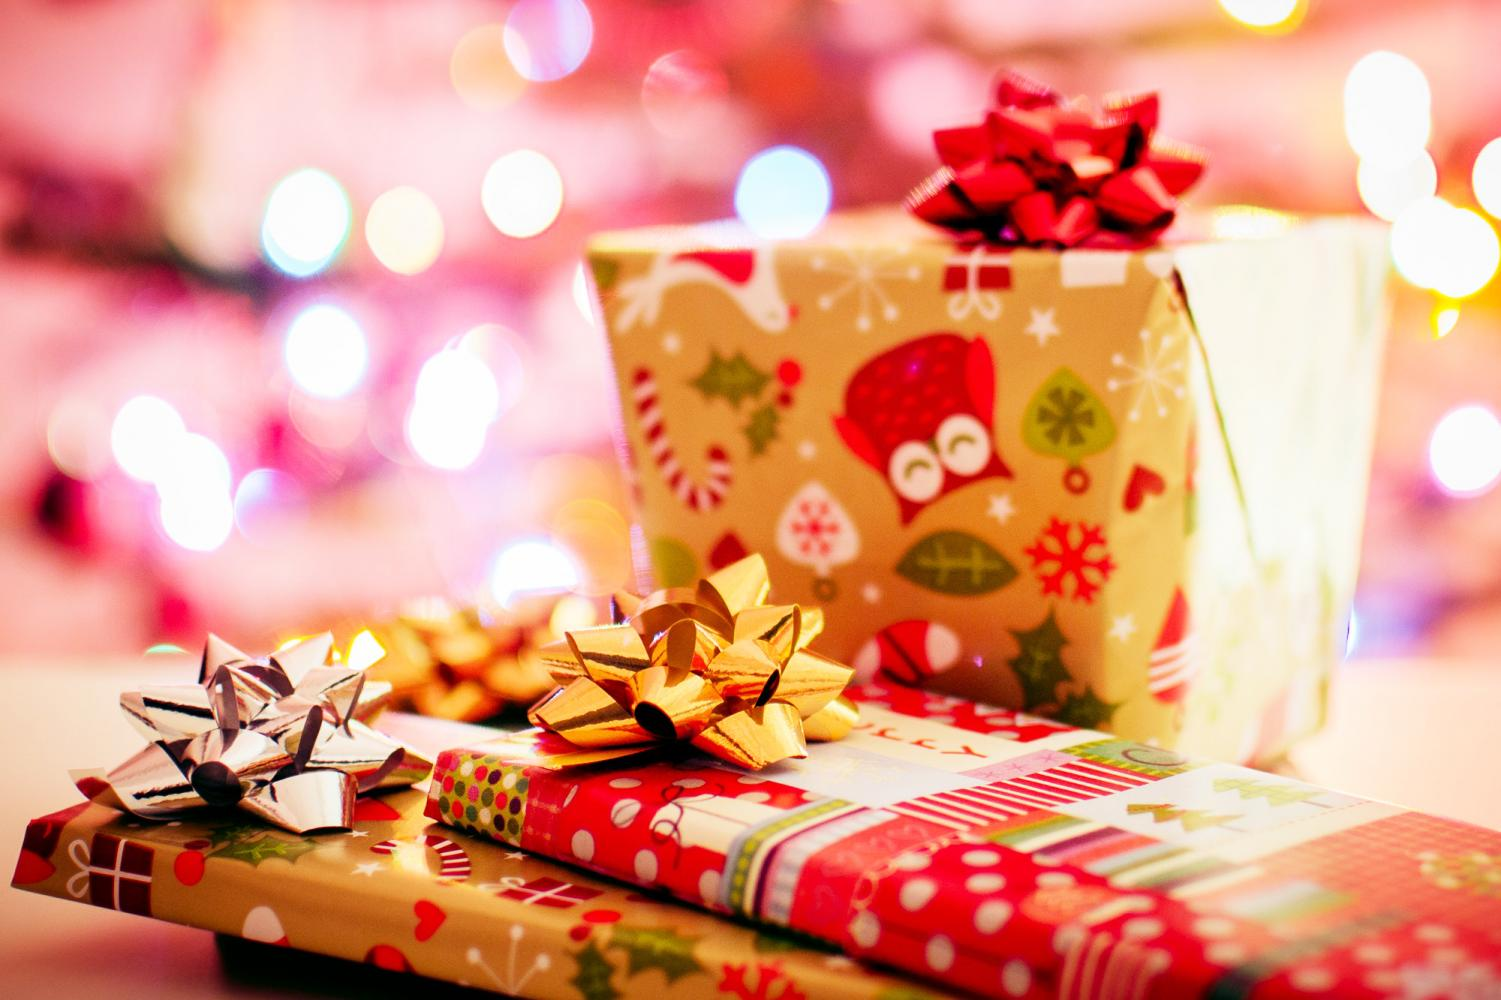 While shiny and glittery gift wrap might be a modern luxury, the act of wrapping gifts has been around since paper was invented in 105 AD. Humans love the surprise and thrill of unwrapping a gift!